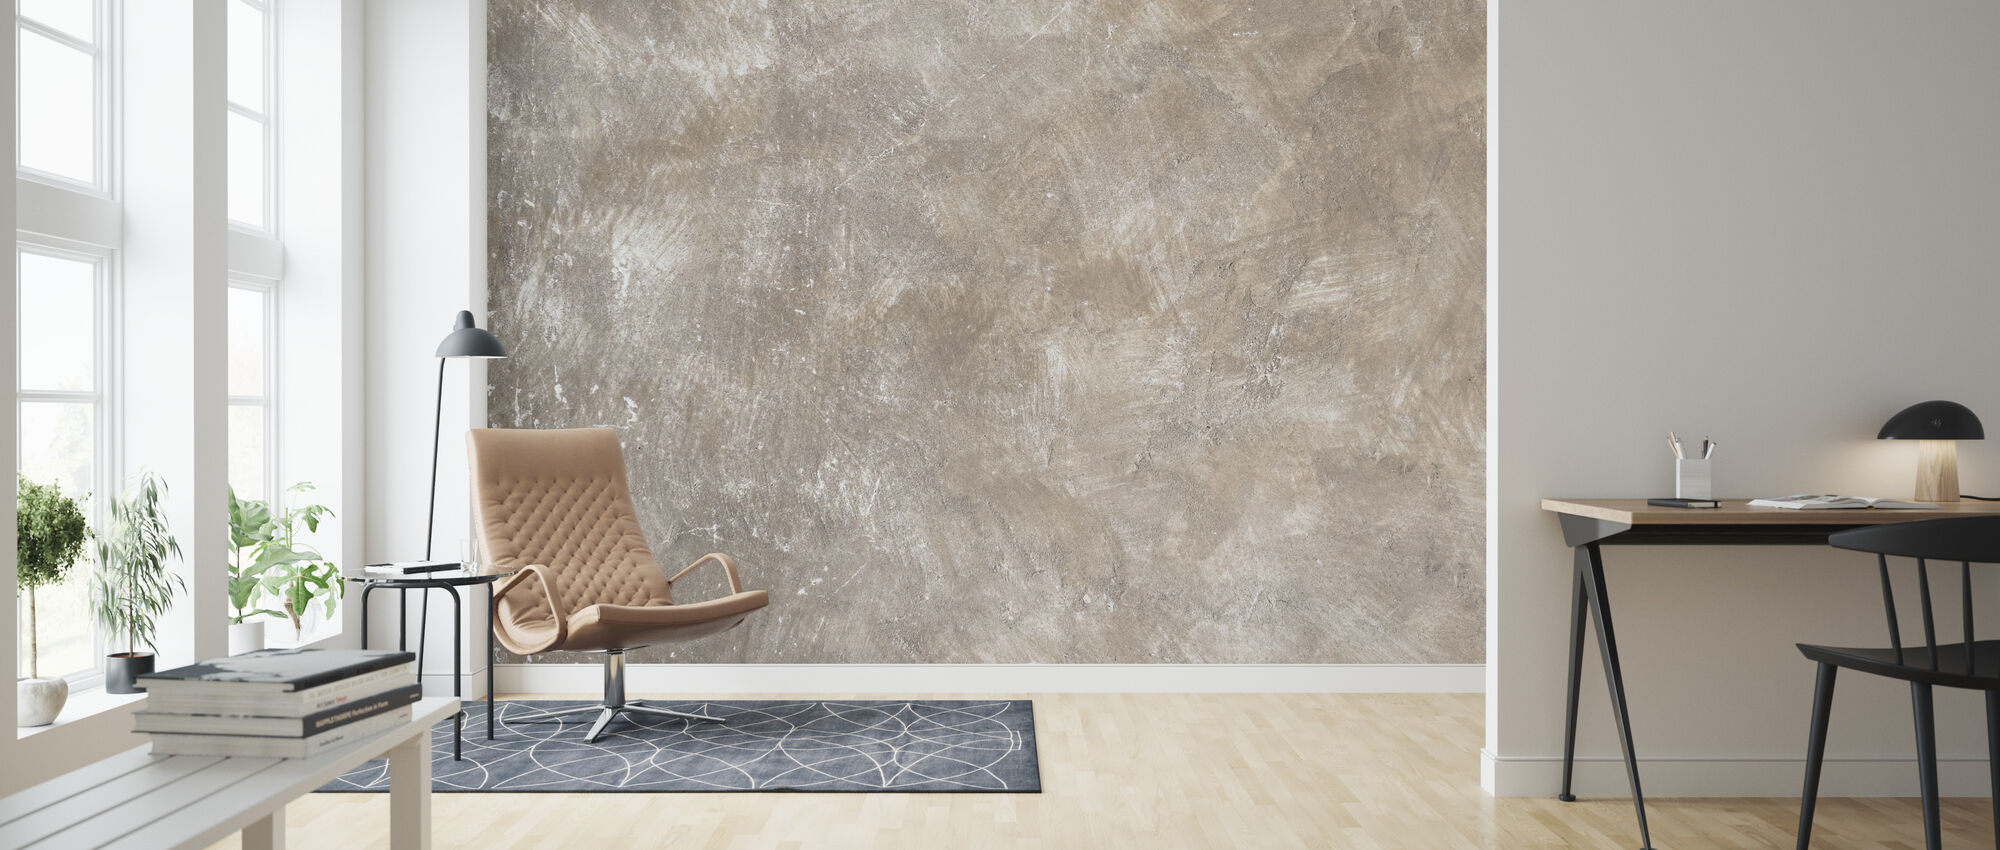 Weathered Wall - Wallpaper - Living Room